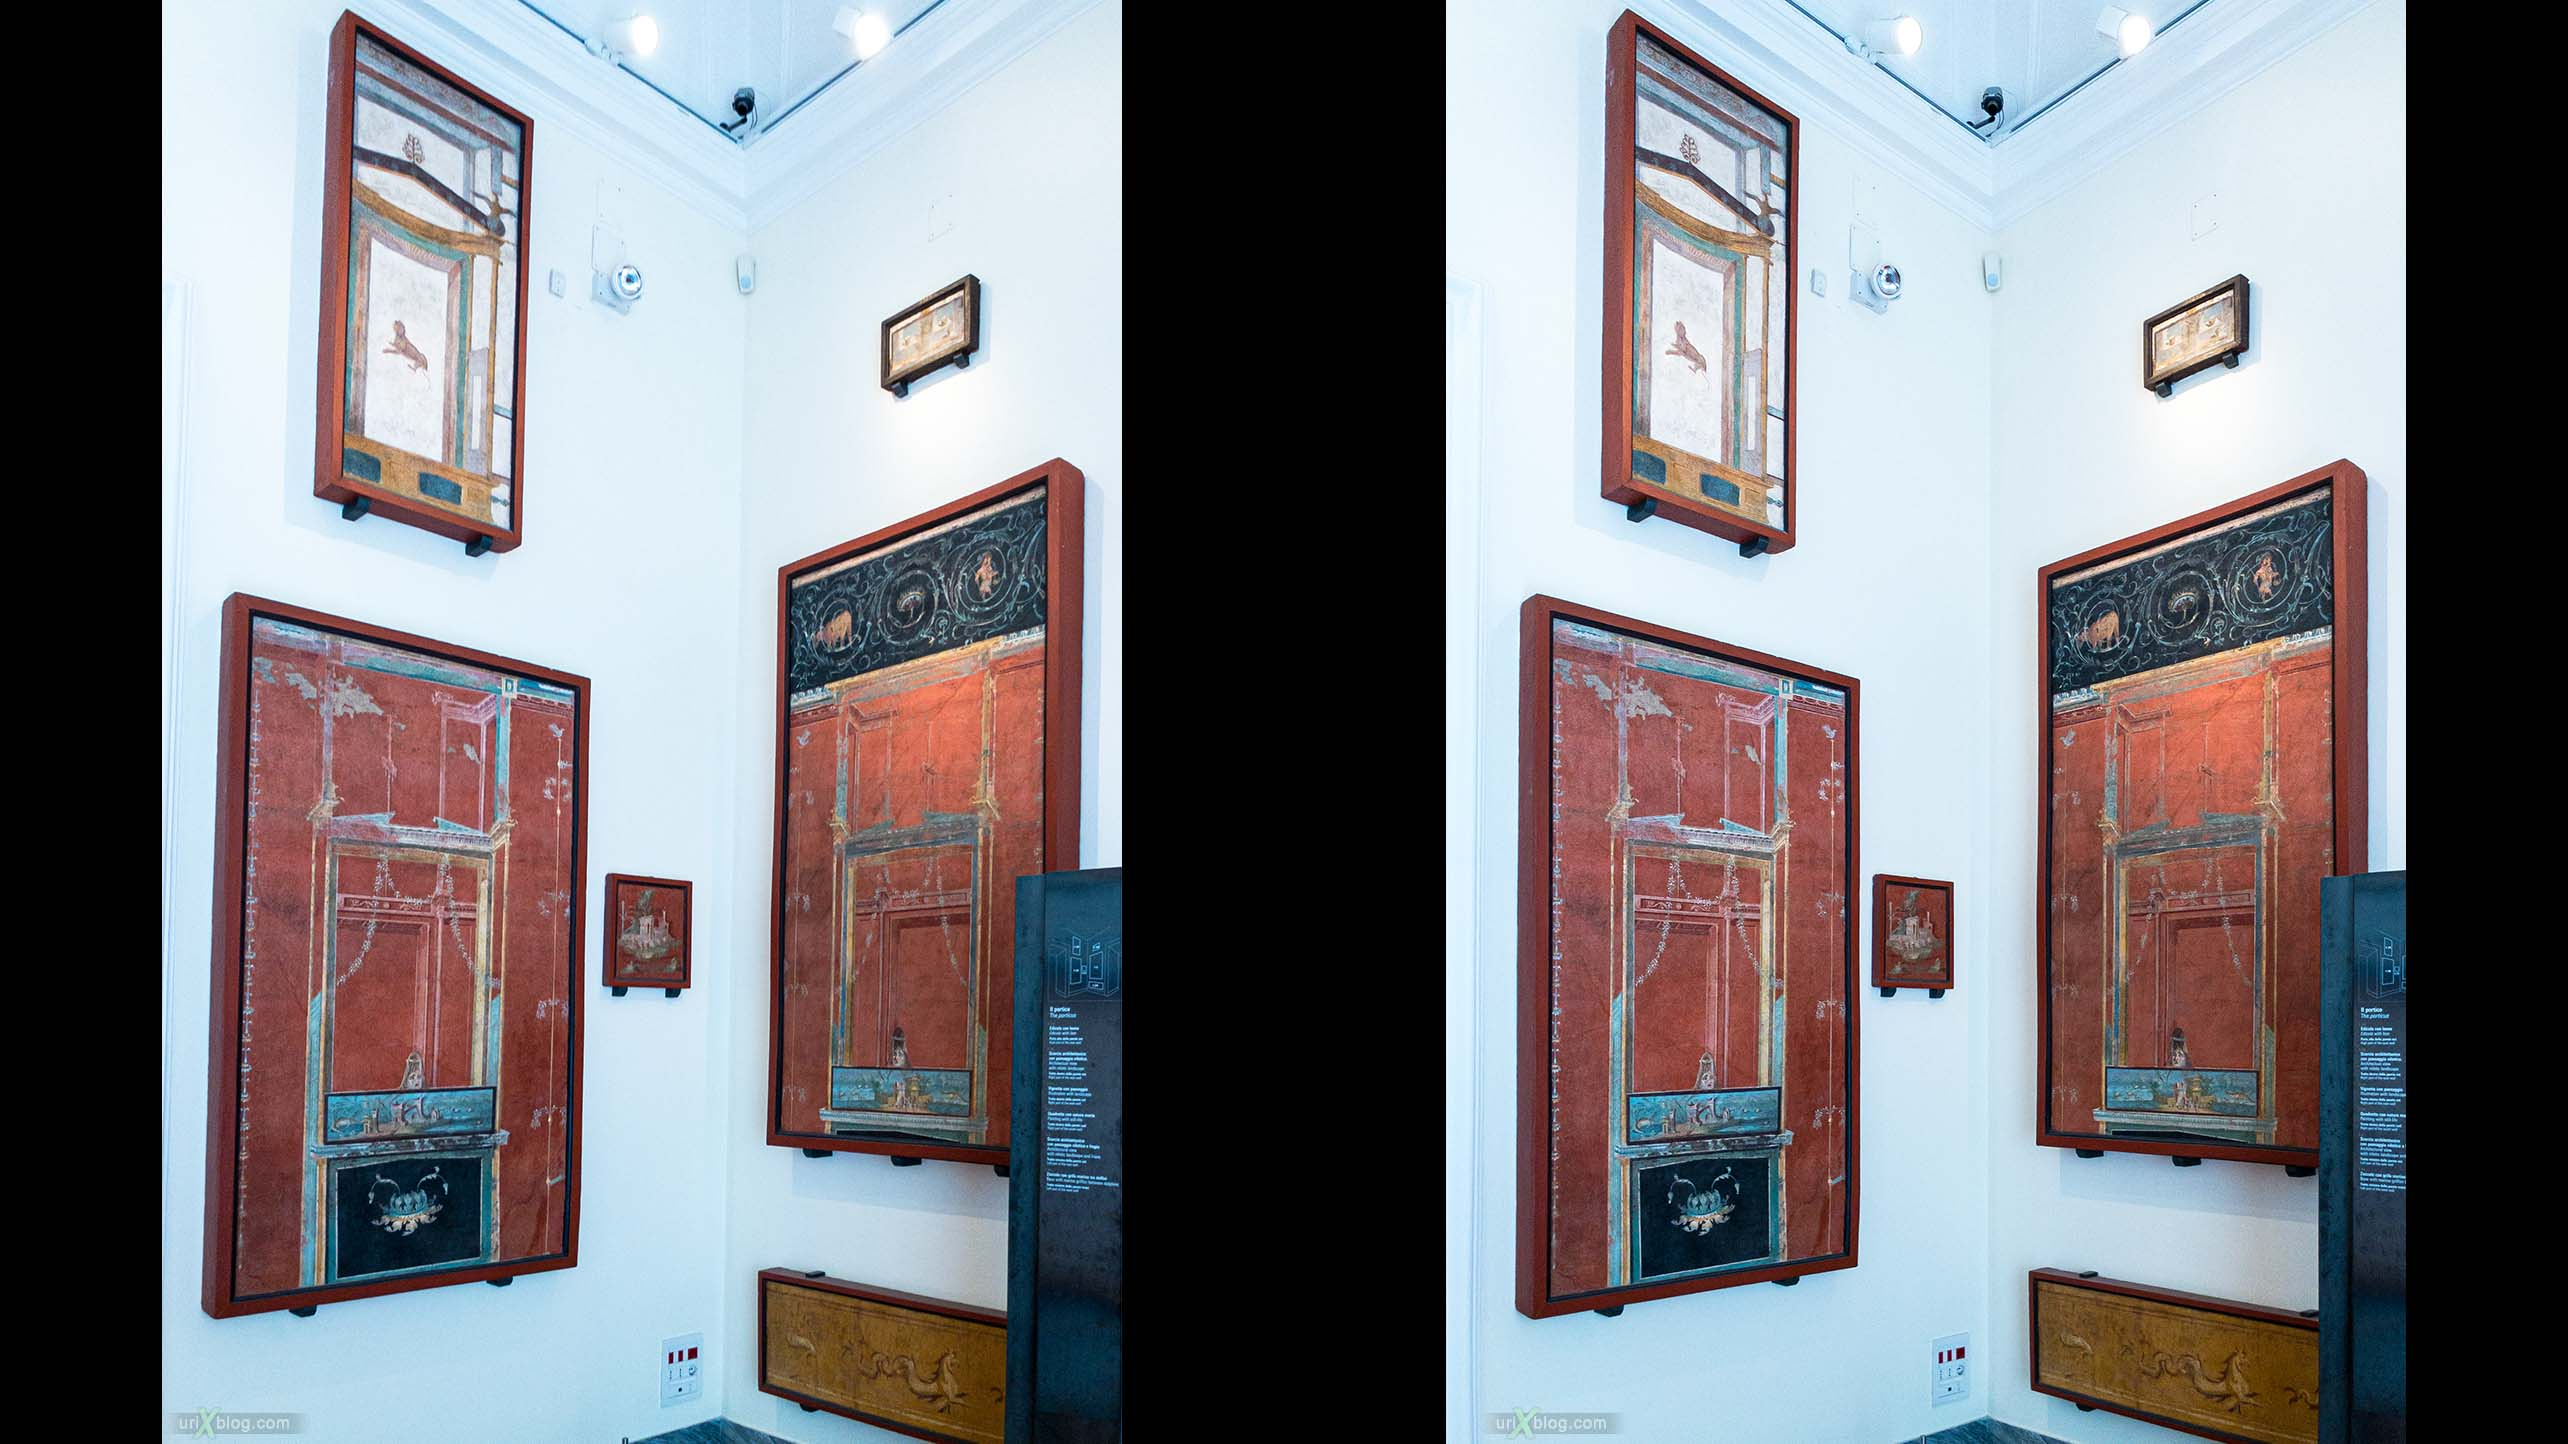 frescoes, National Archaeological Museum of Naples, ancient Rome, Pompei, exhibition, Naples, Italy, 3D, stereo pair, cross-eyed, crossview, cross view stereo pair, stereoscopic